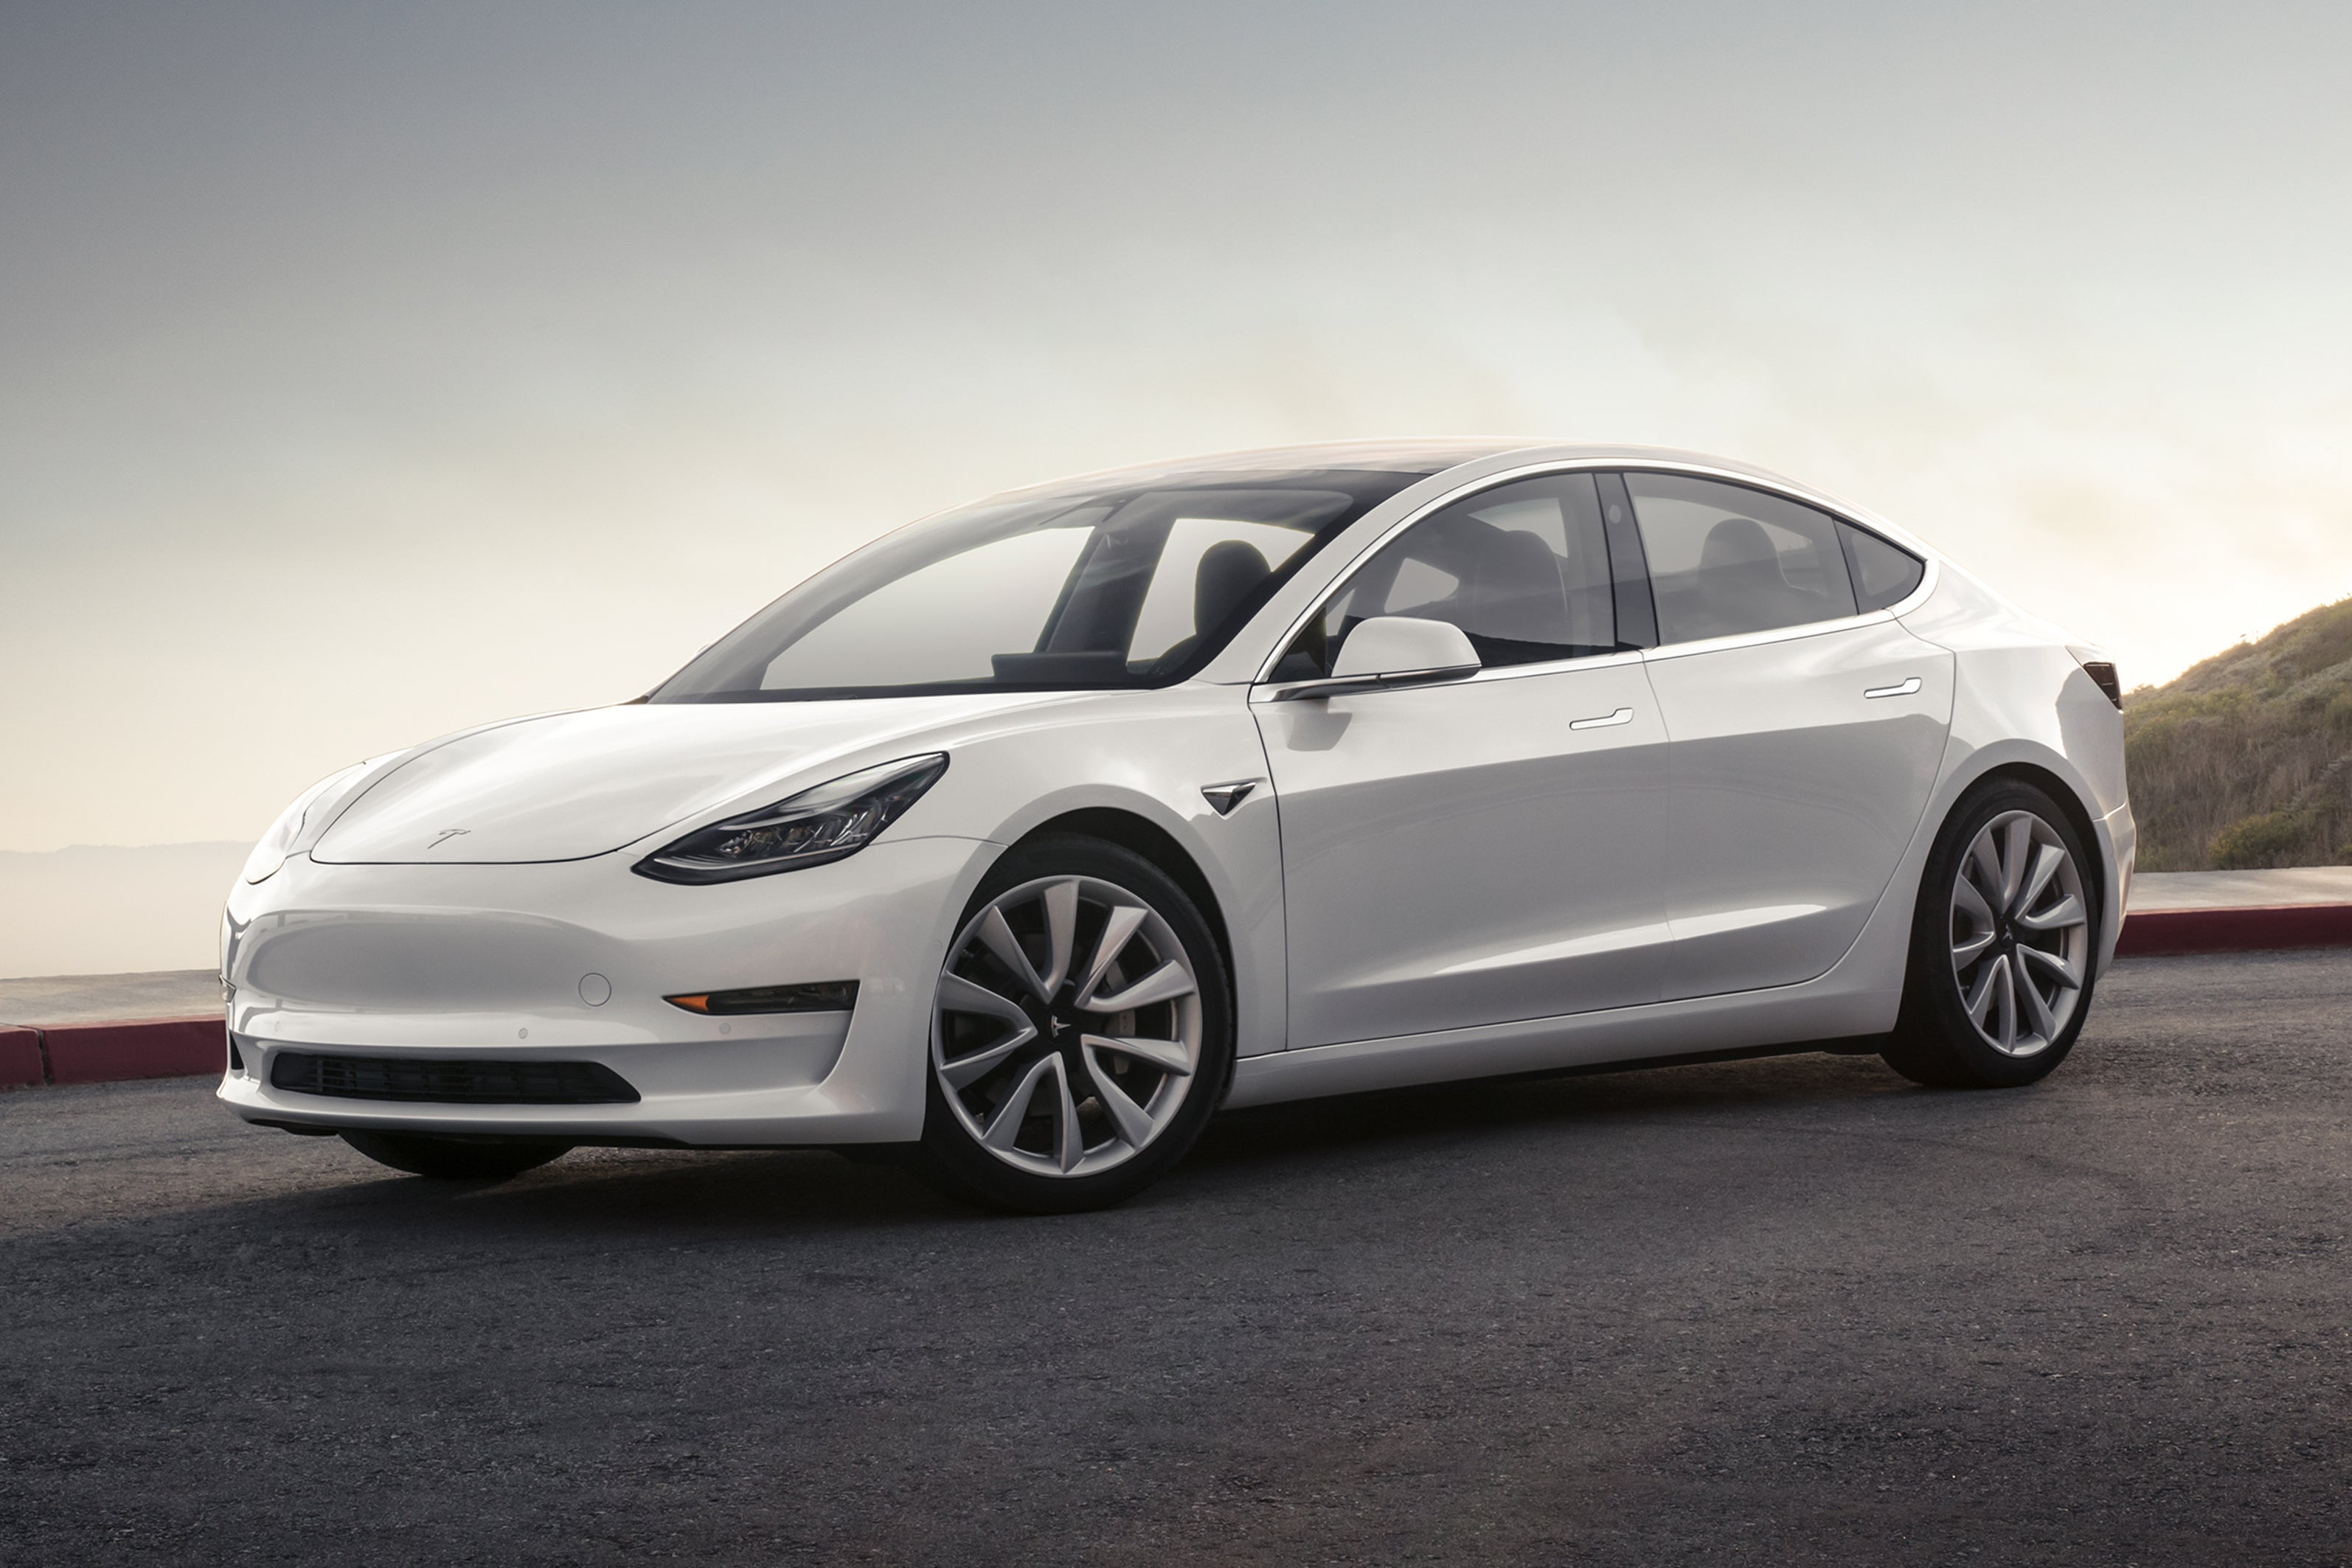 Tesla Model 3 Front Side View